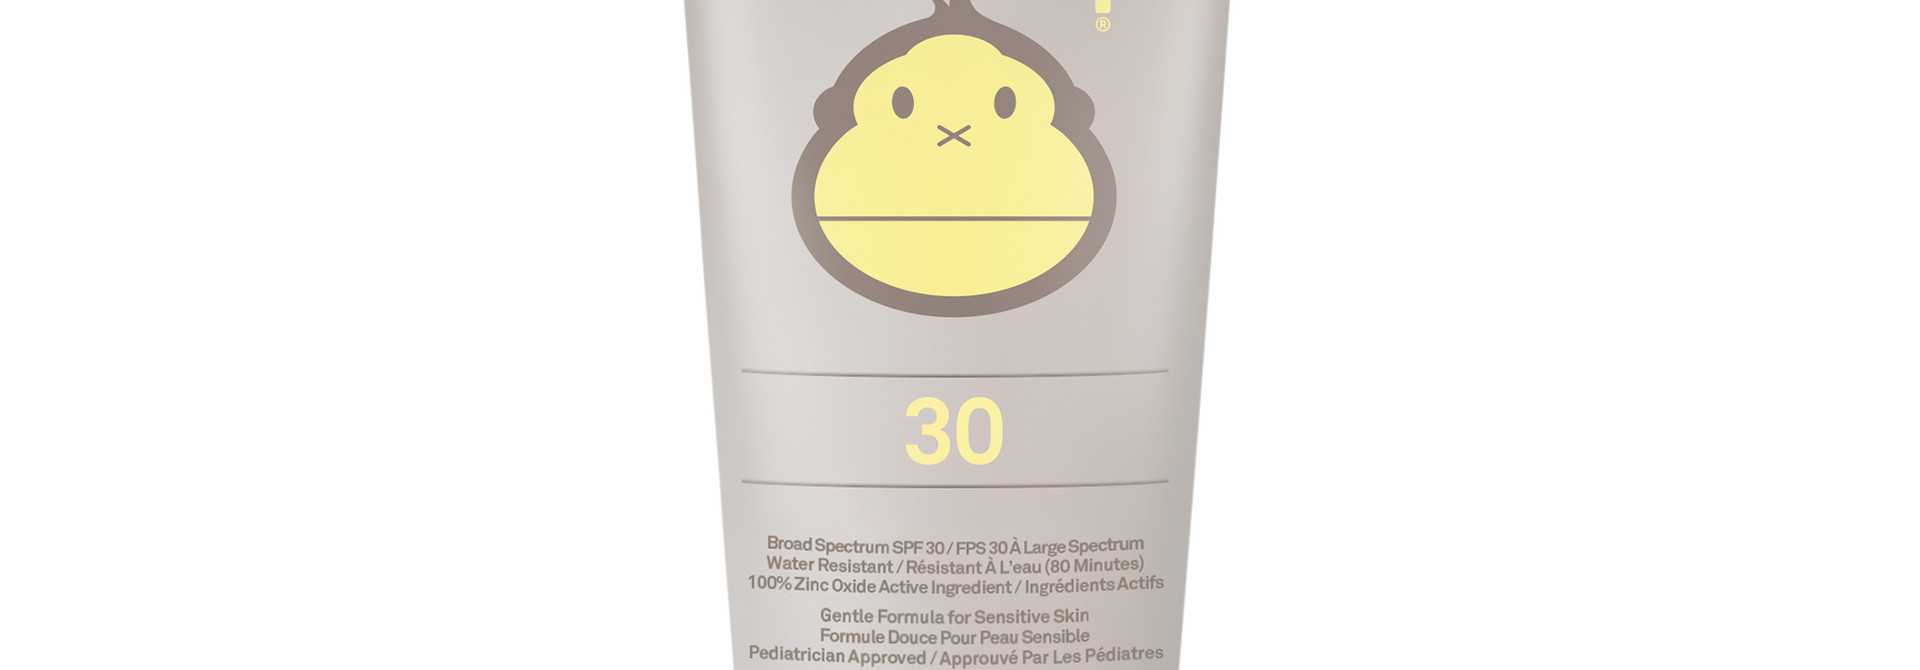 SPF 30 Baby Bum Natural Sunscreen Lotion 88ml